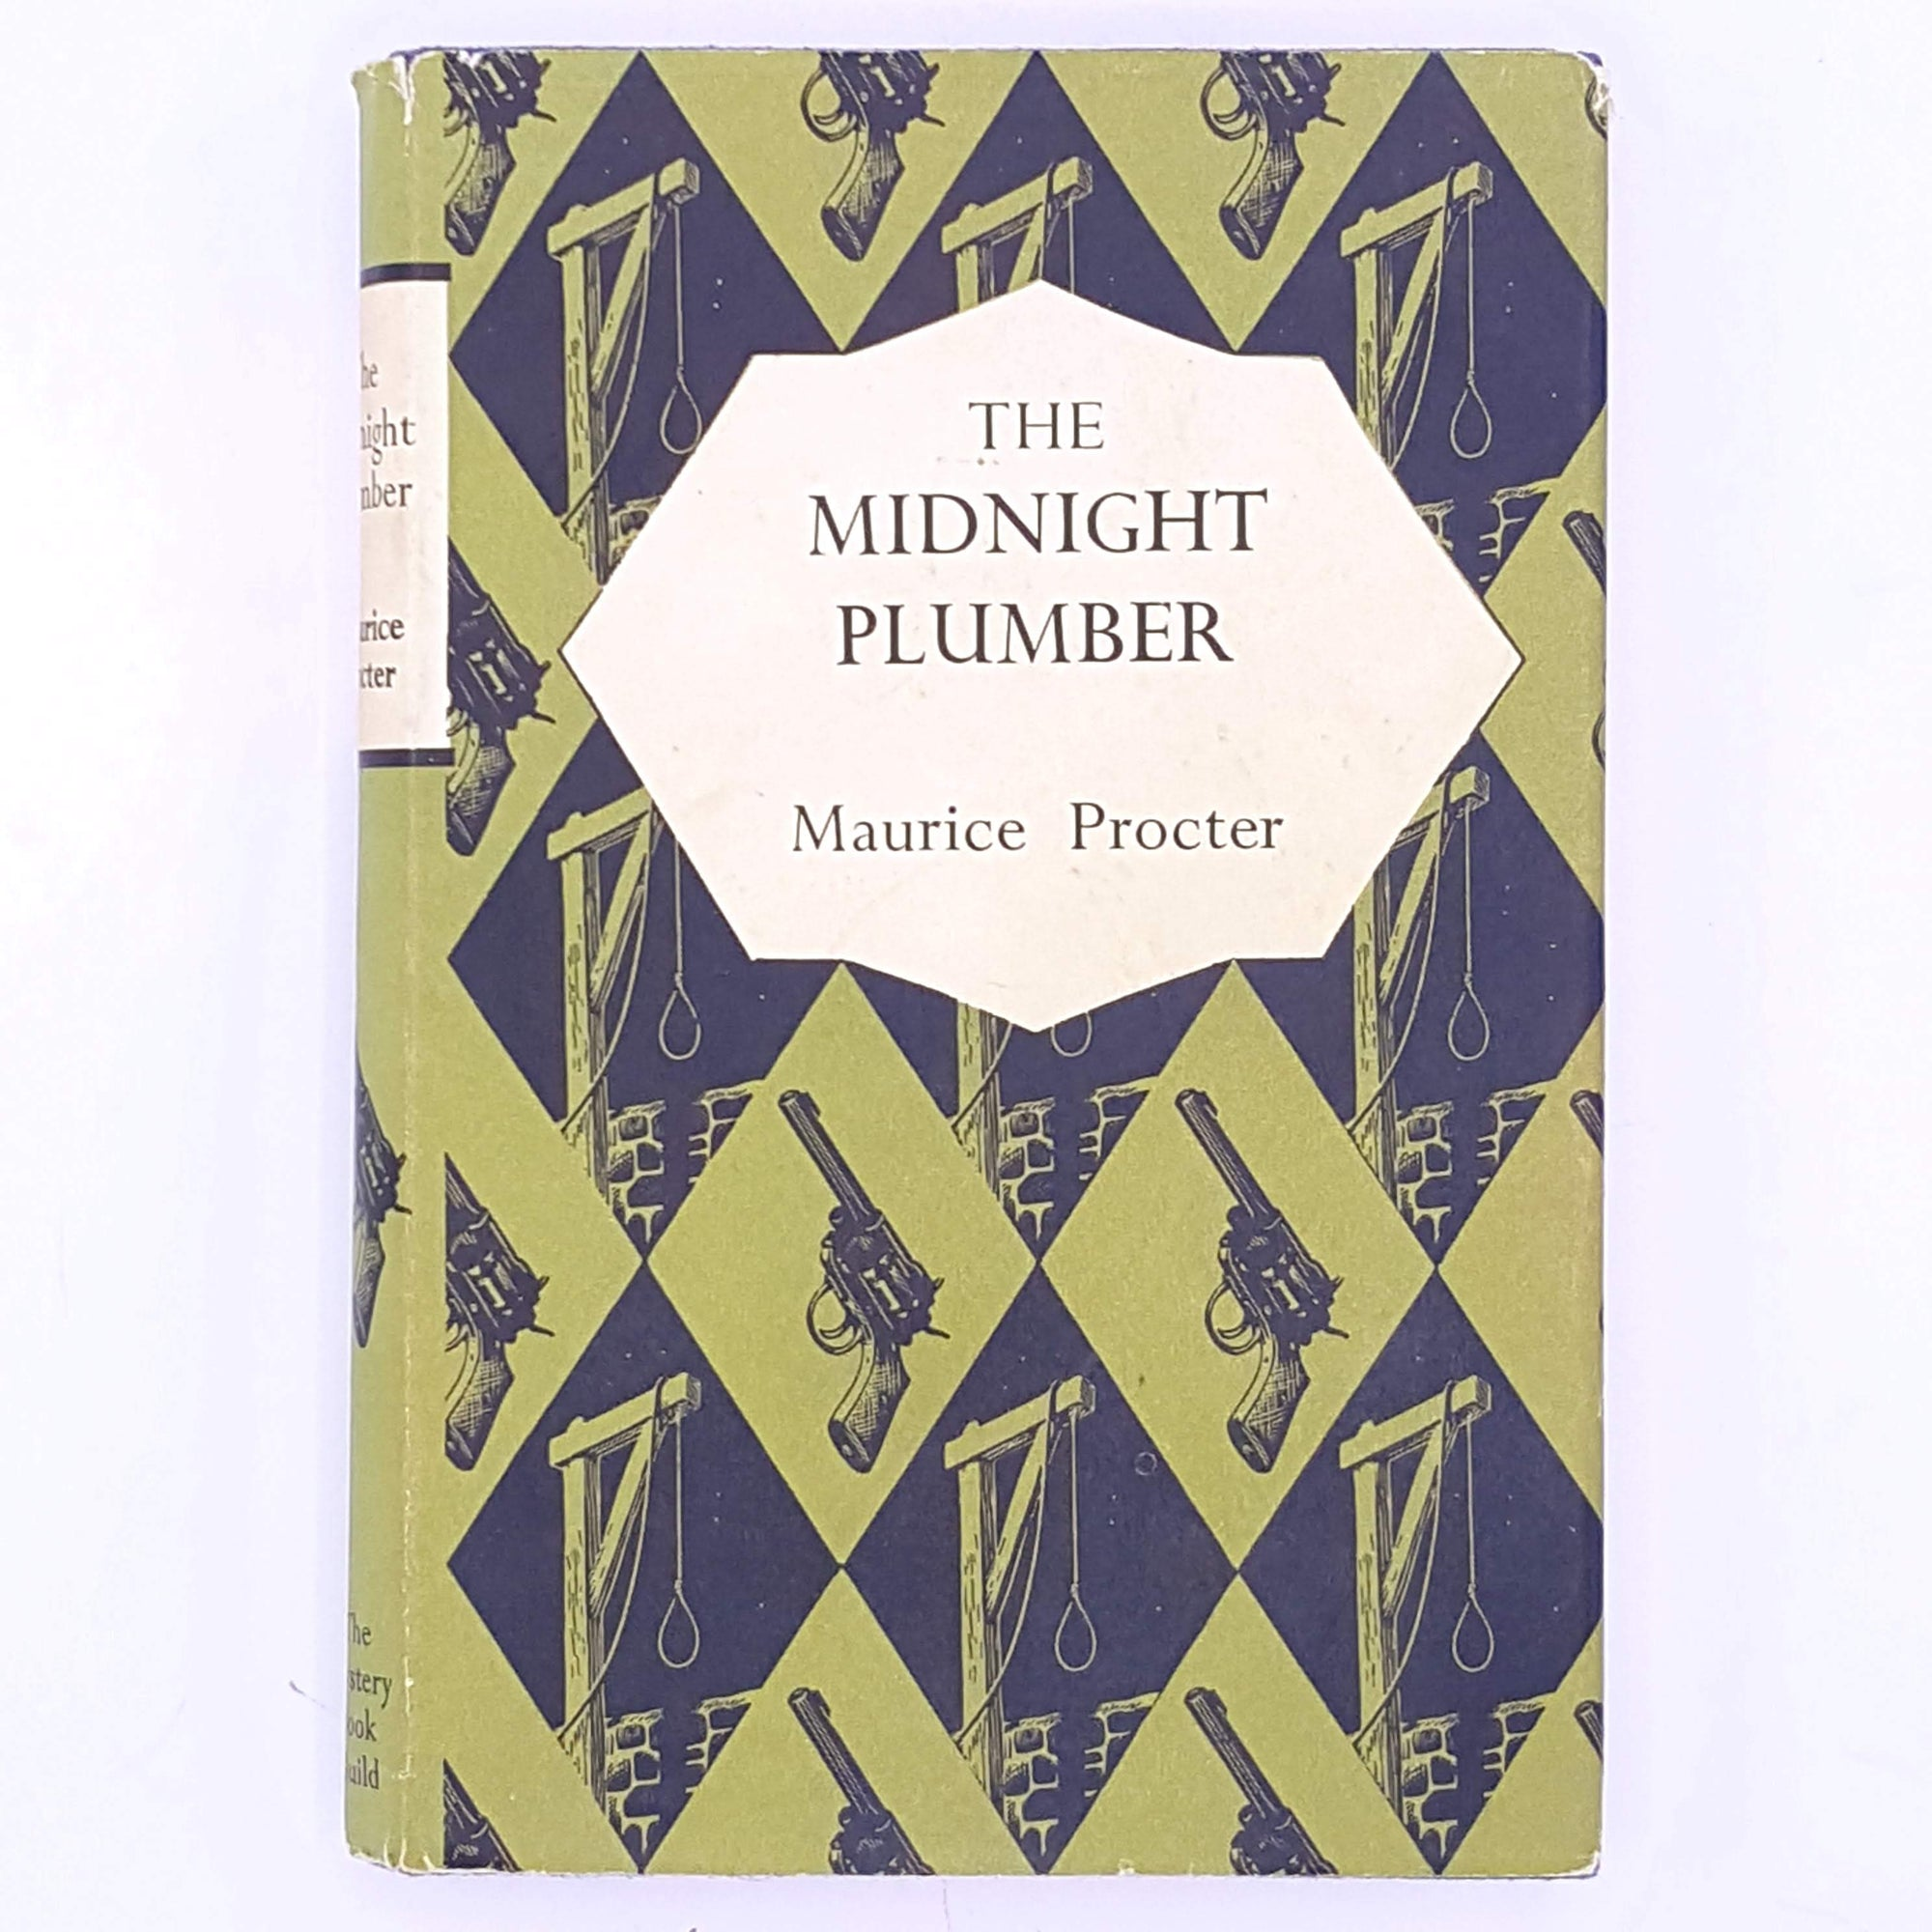 The Midnight Plumber, Maurice Procter, 1958